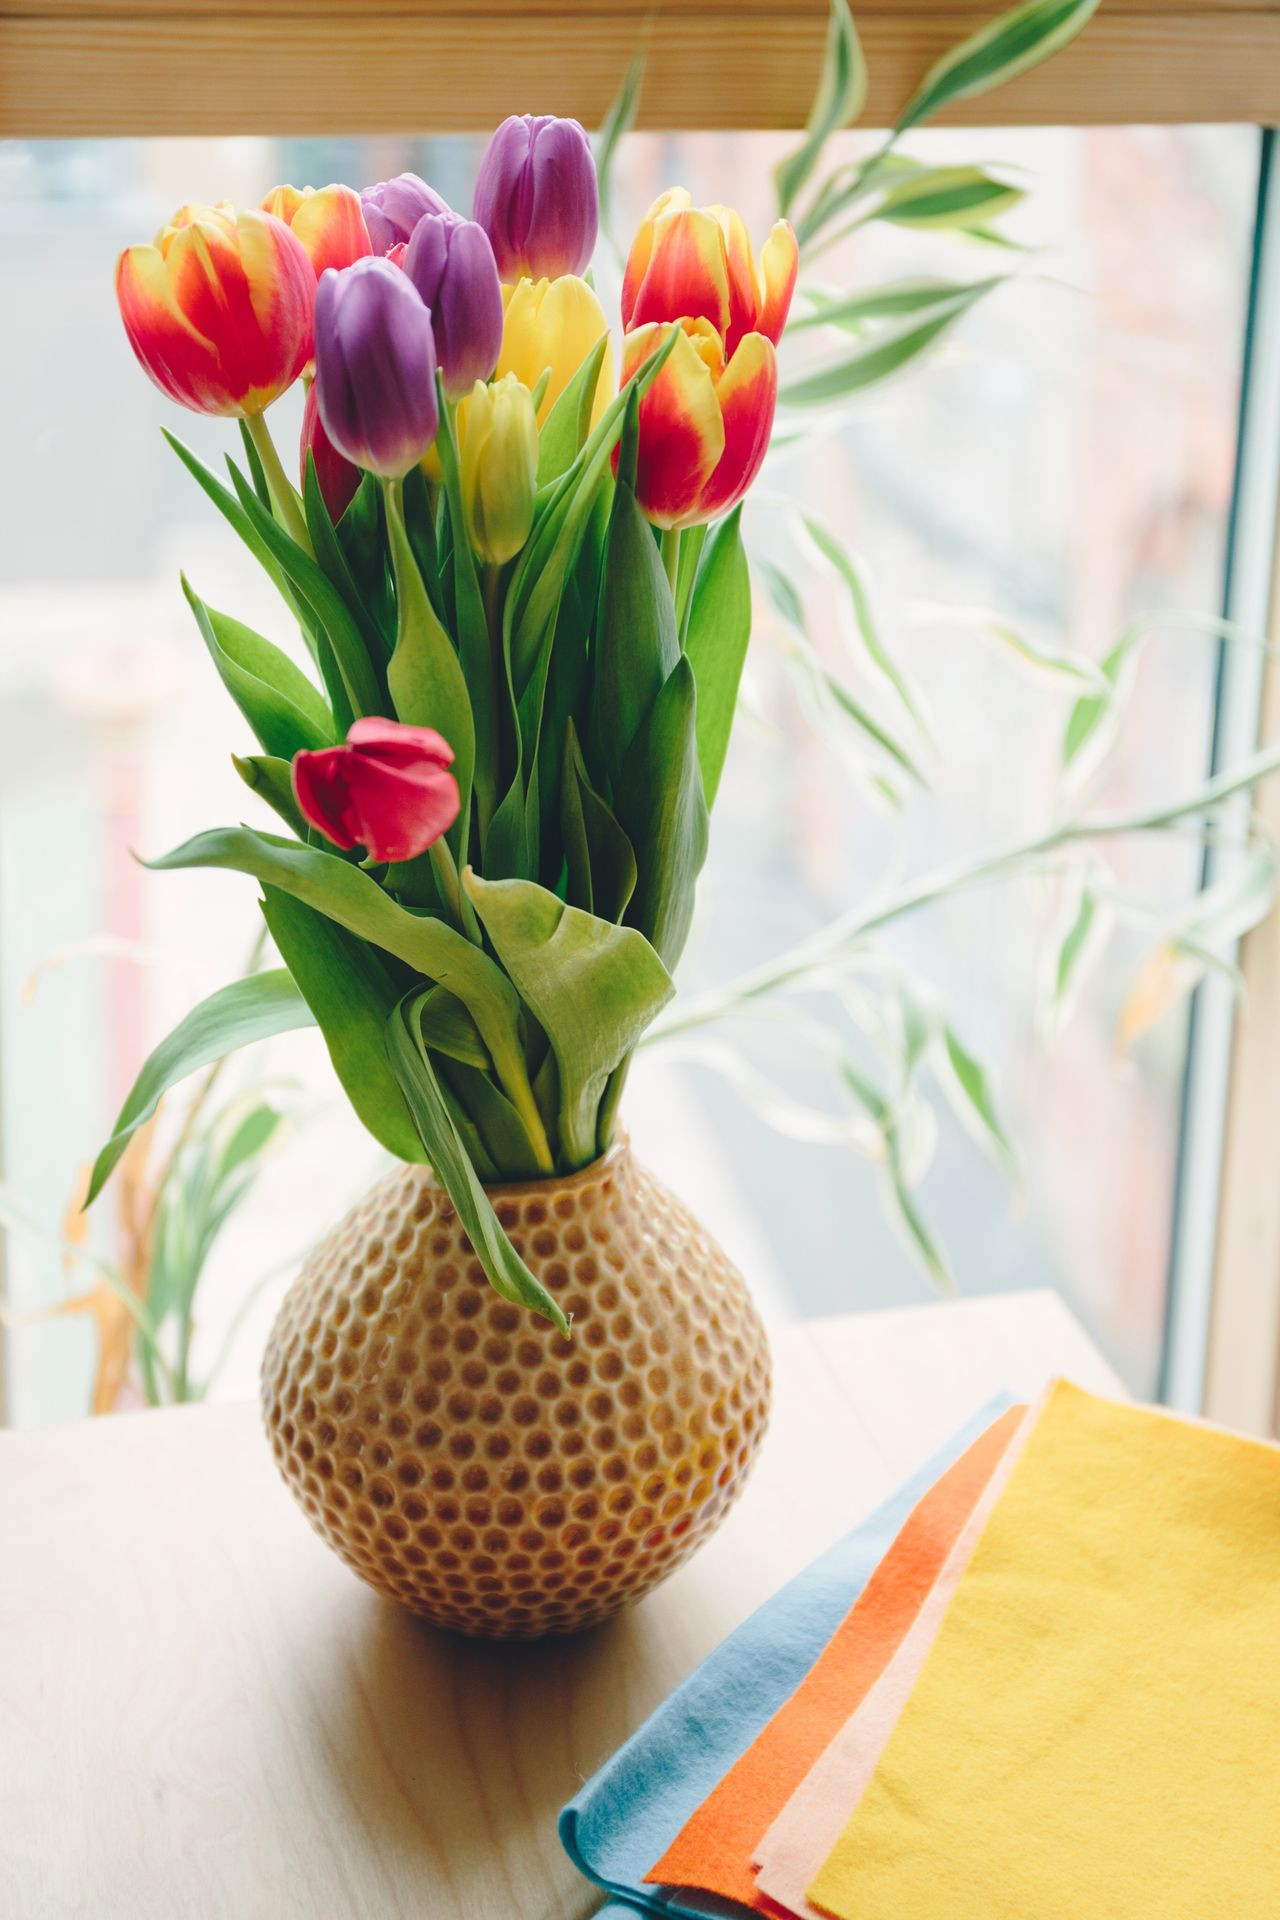 Flower Freshness Flowers Tulips Vase Tulip Petal Plant Nature No People Close-up Indoors  Home Felt Lifestyle Photography Home Decor Fragility Flower Arrangement Bouquet Spring Springtime Colourful Green